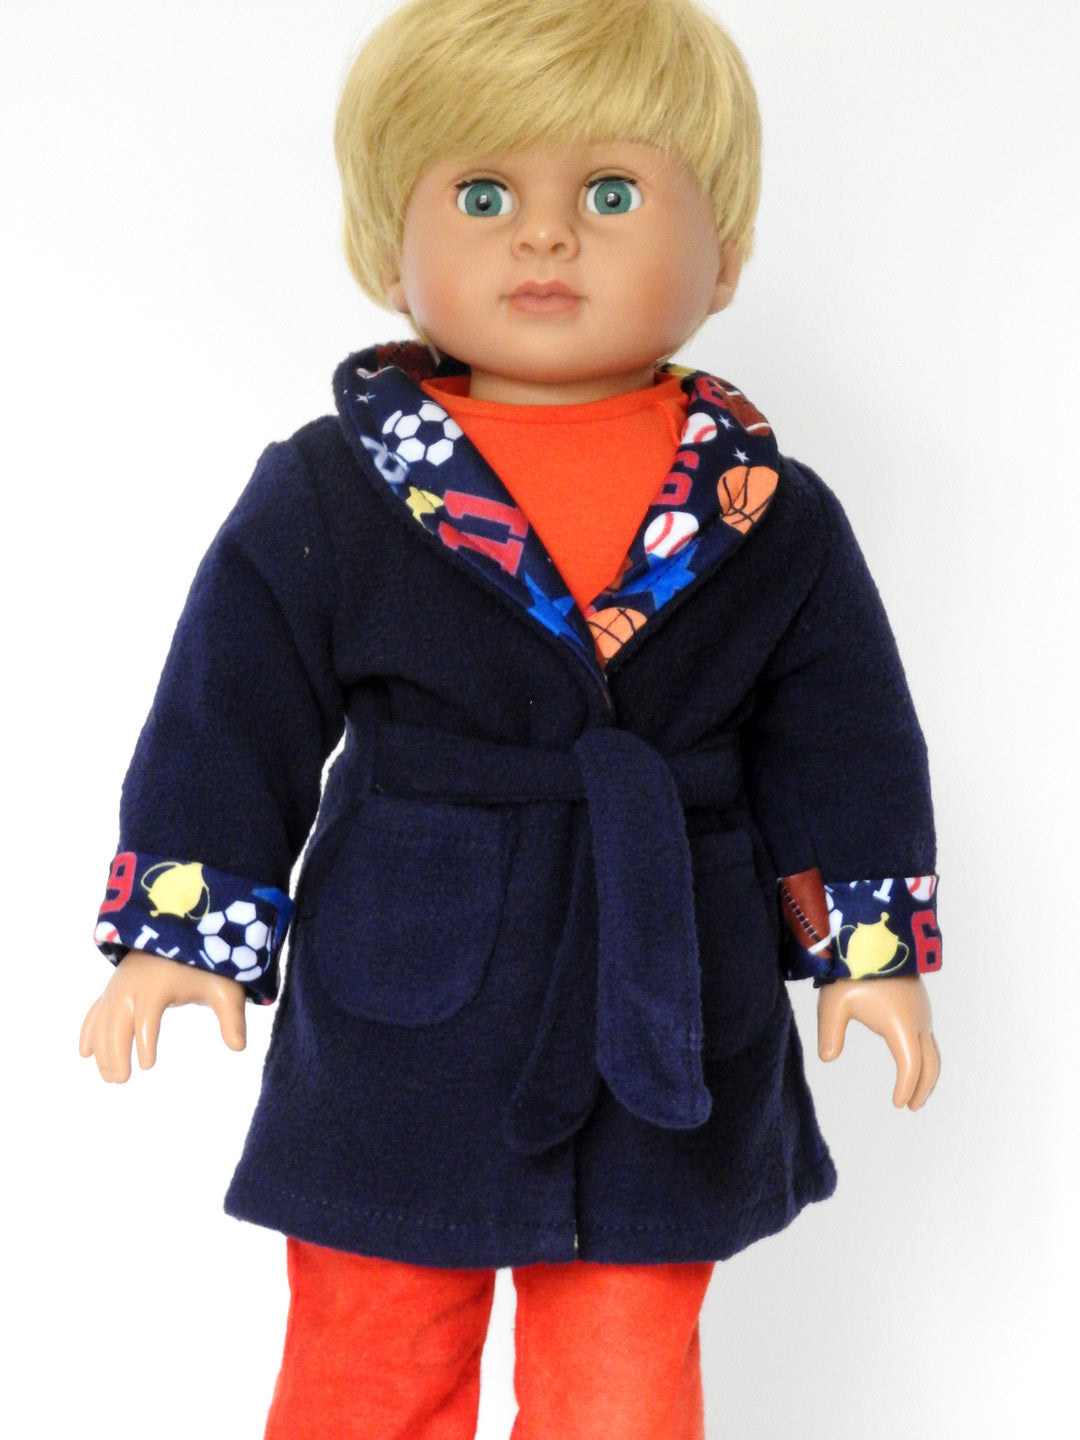 18 Inch Boy Doll Pj's, Robe